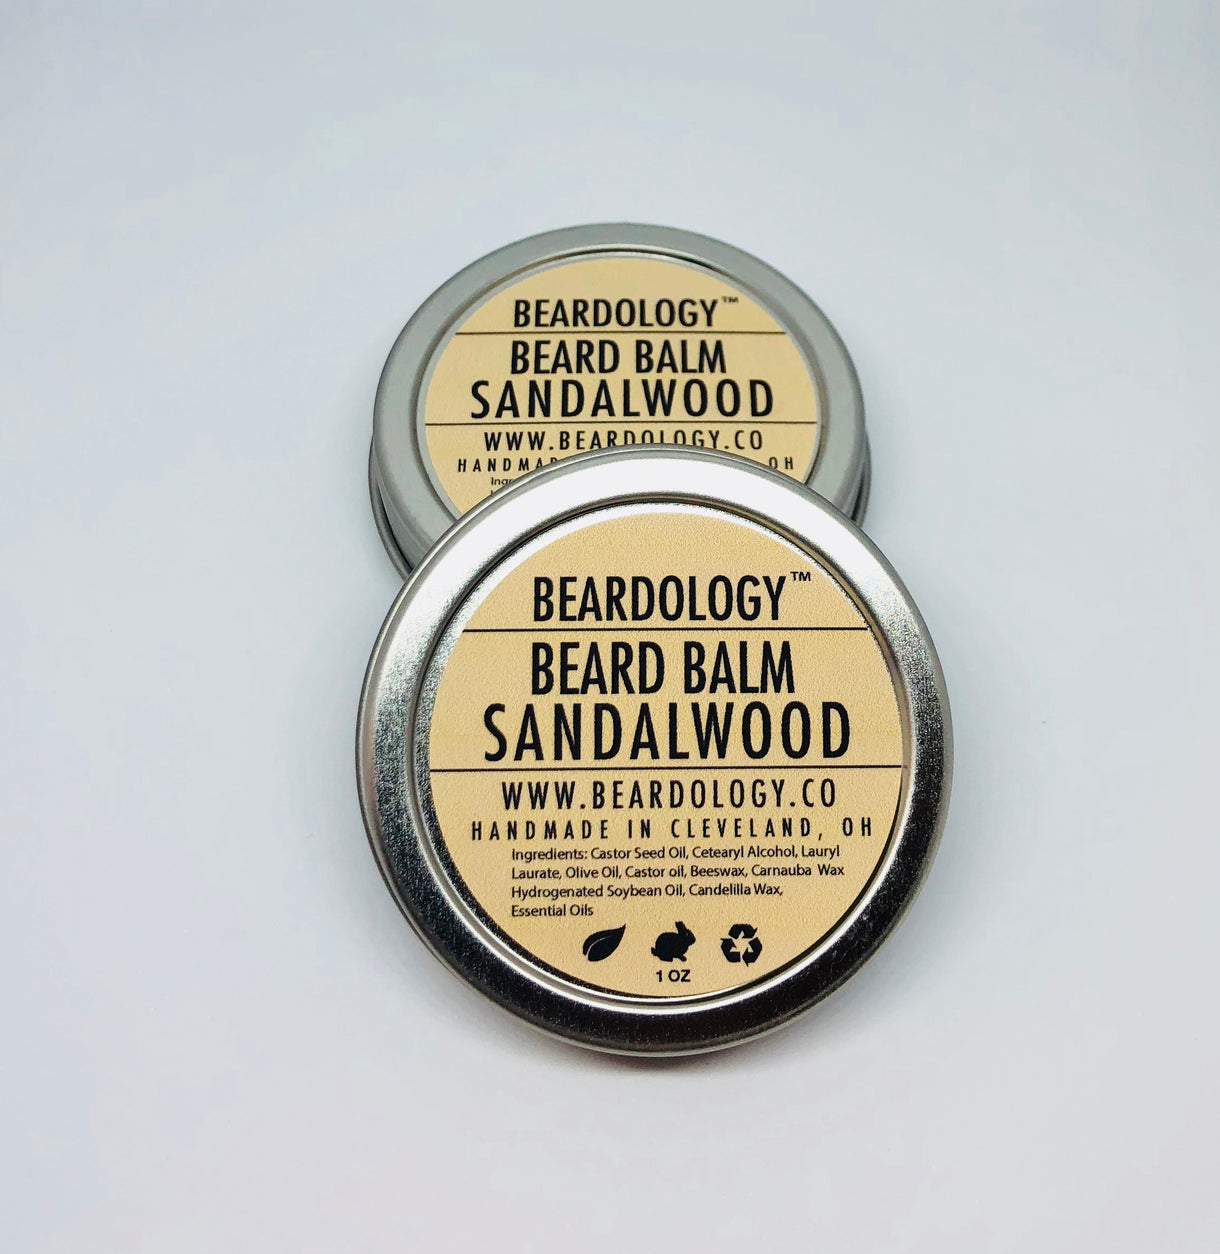 2 Beard Balms - $9 Monthly Subscription